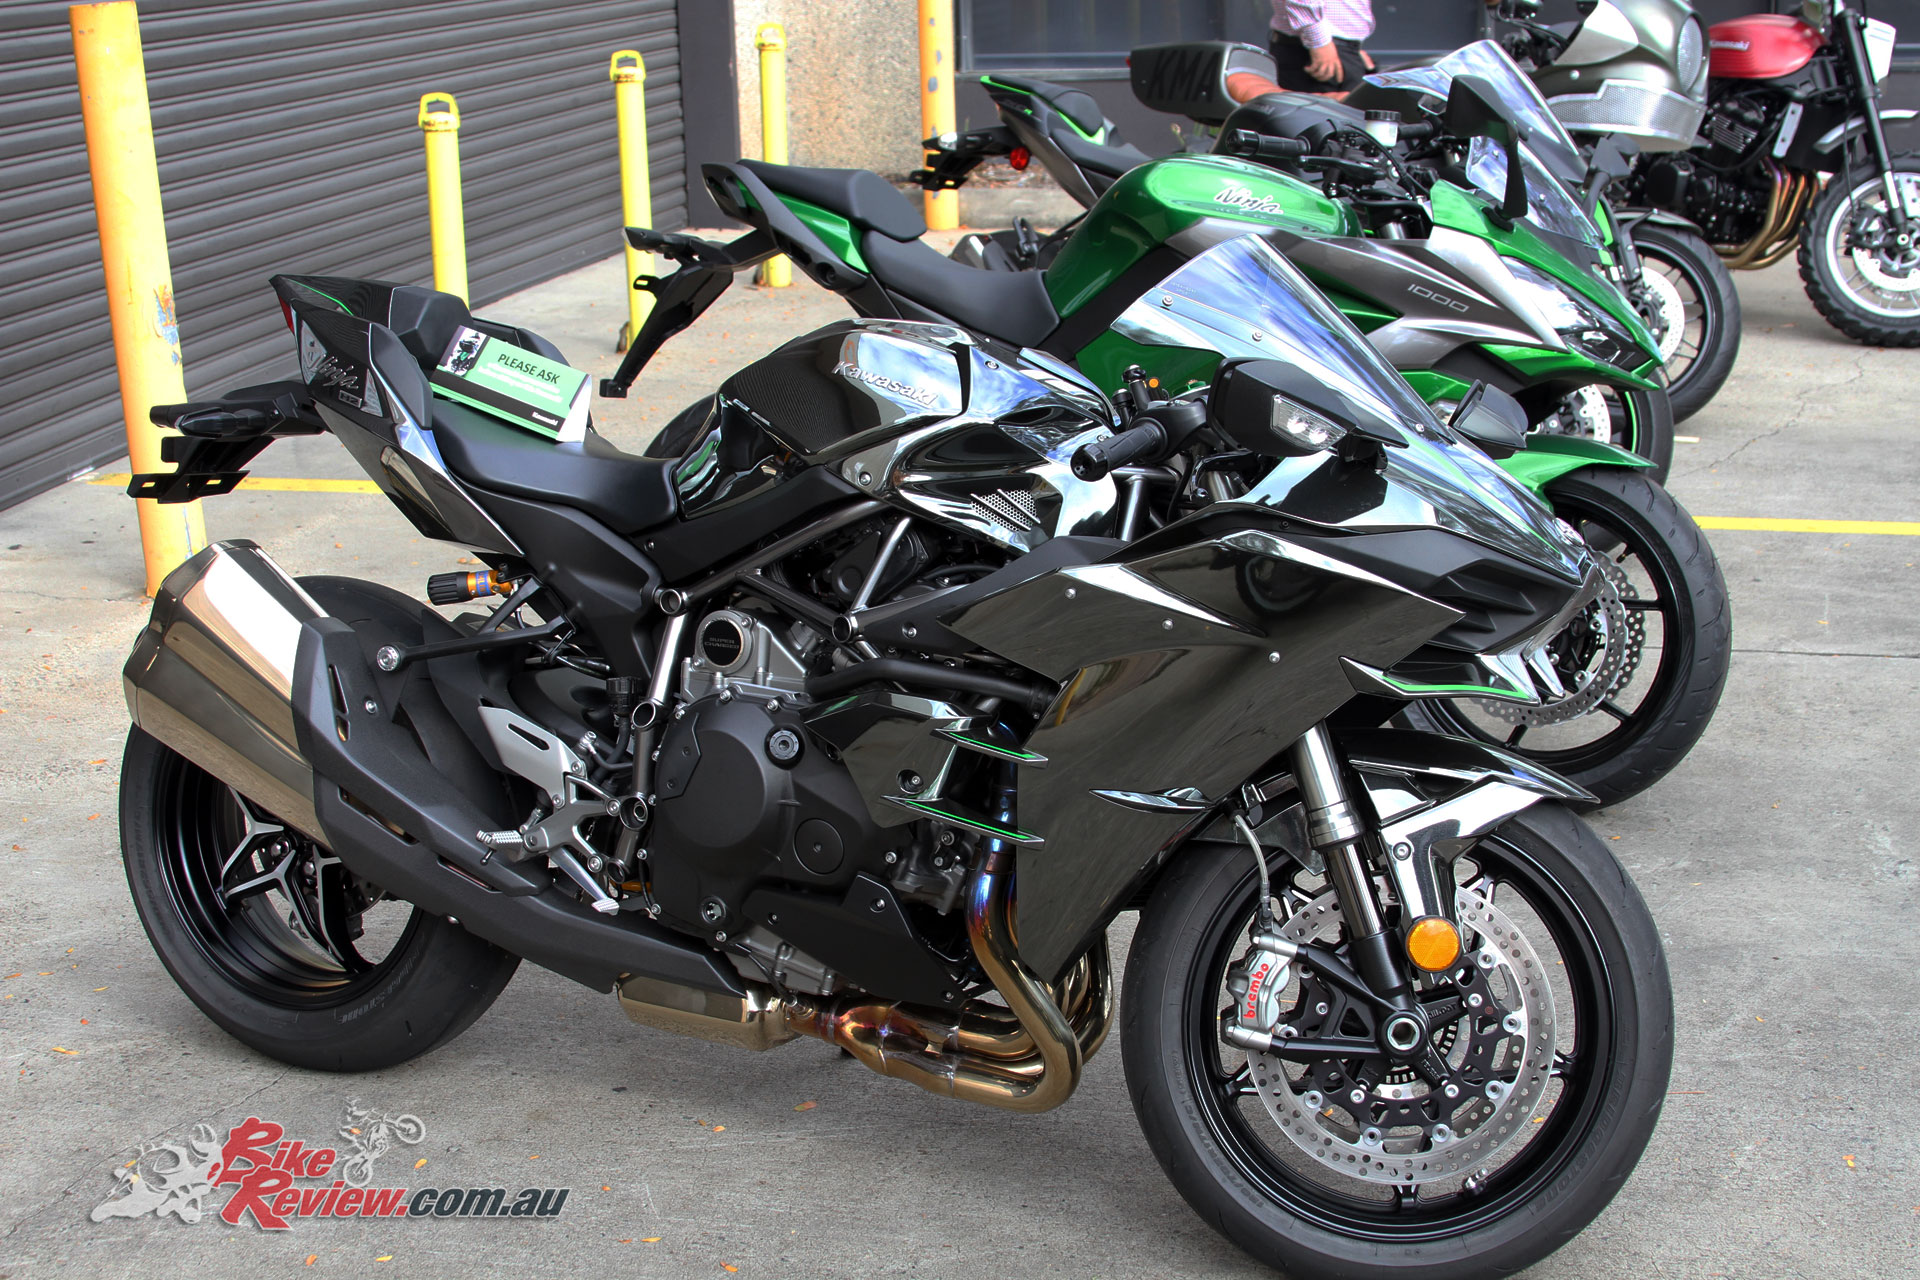 There was the opportunity to take a look at the Ninja H2 and H2 SX SE in the flesh